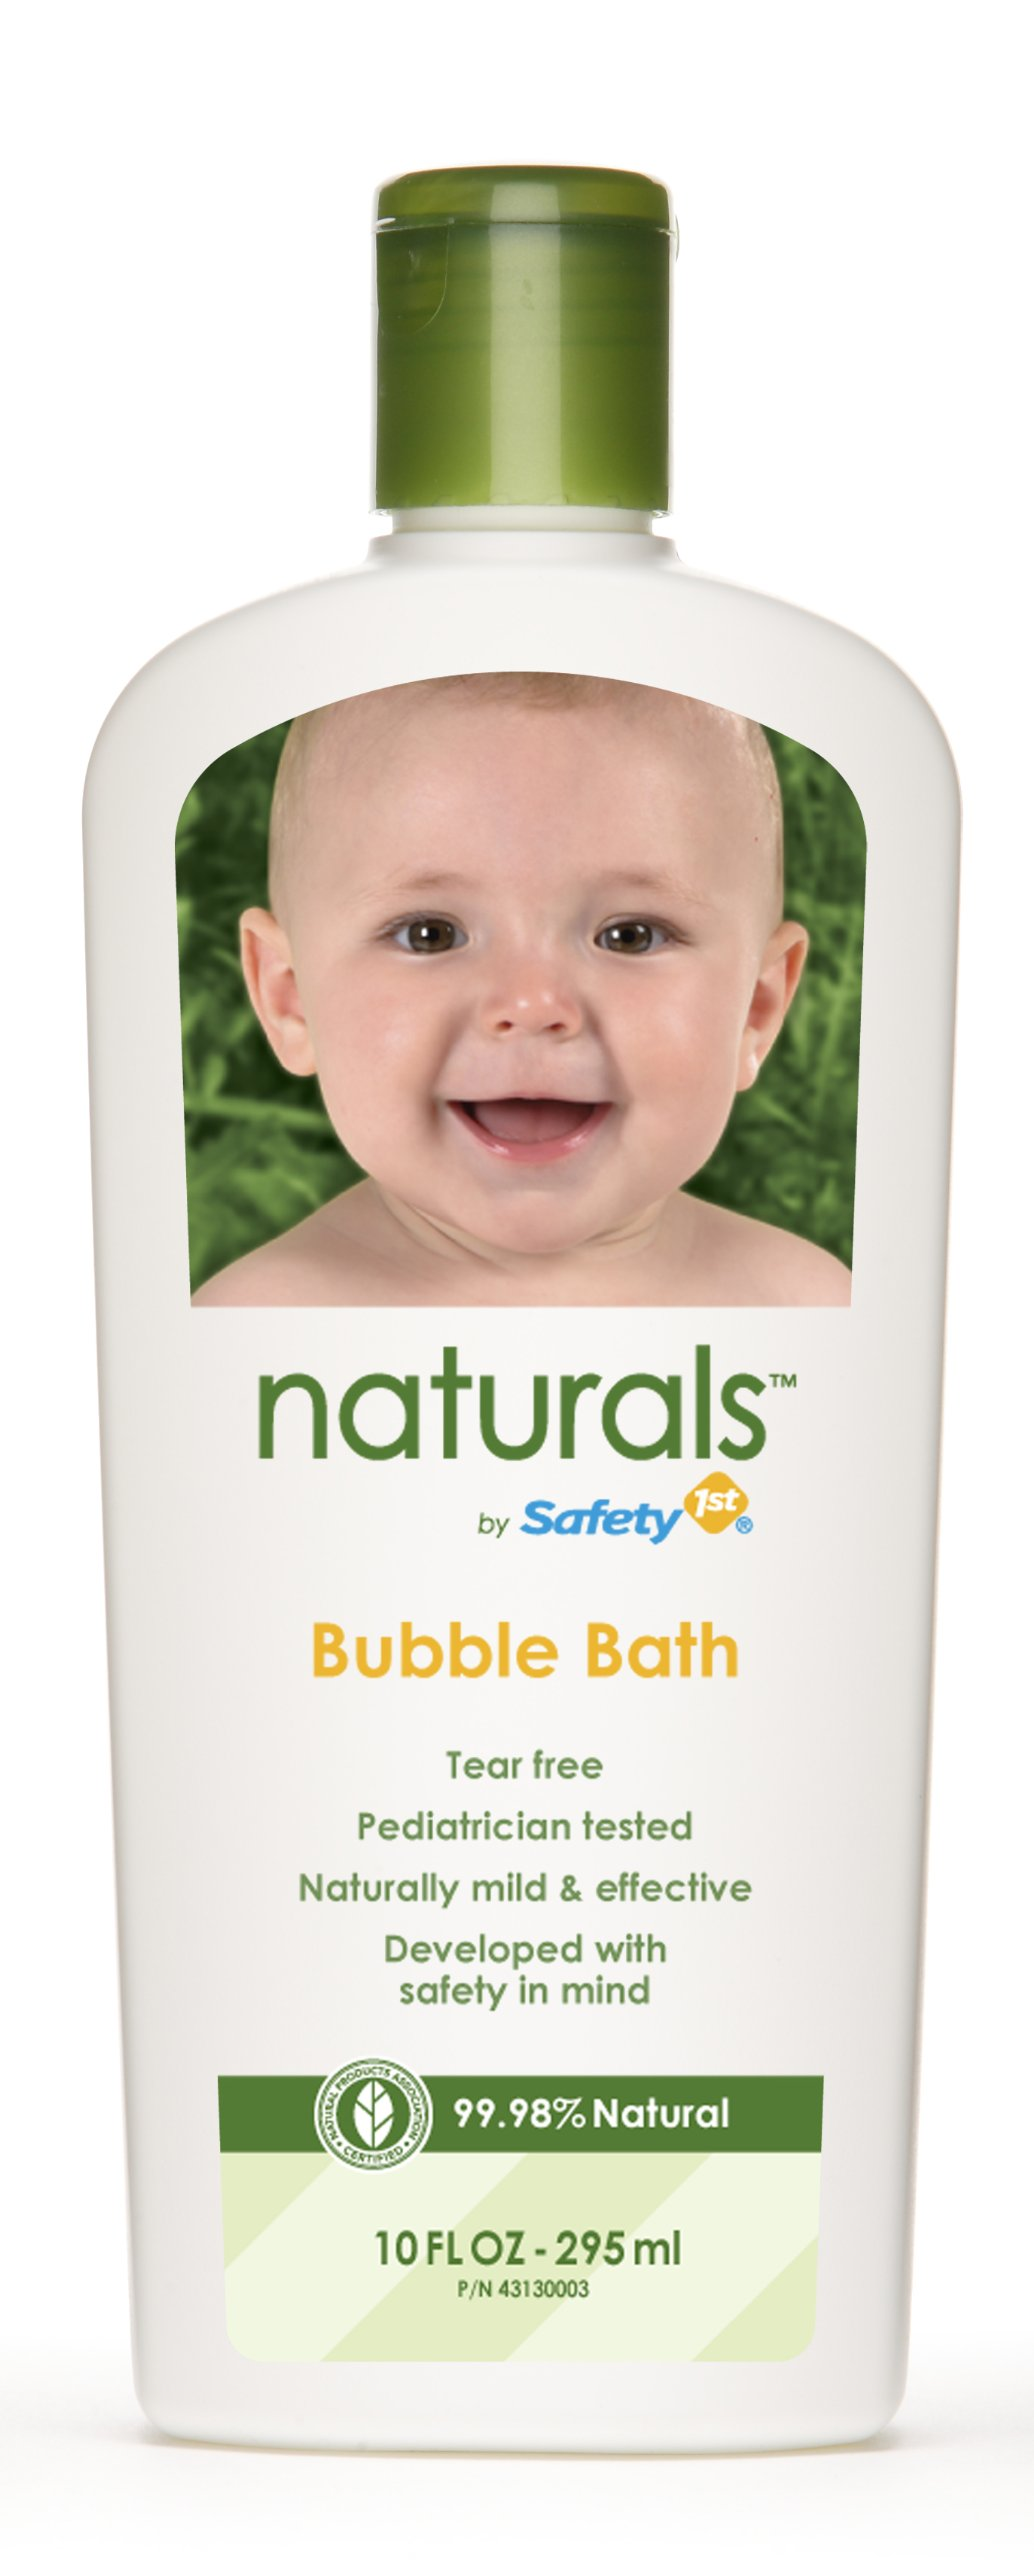 Safety 1st Naturals Bubble Bath, 10-Fluid Ounce Bottles (Pack of 3) by Safety 1st